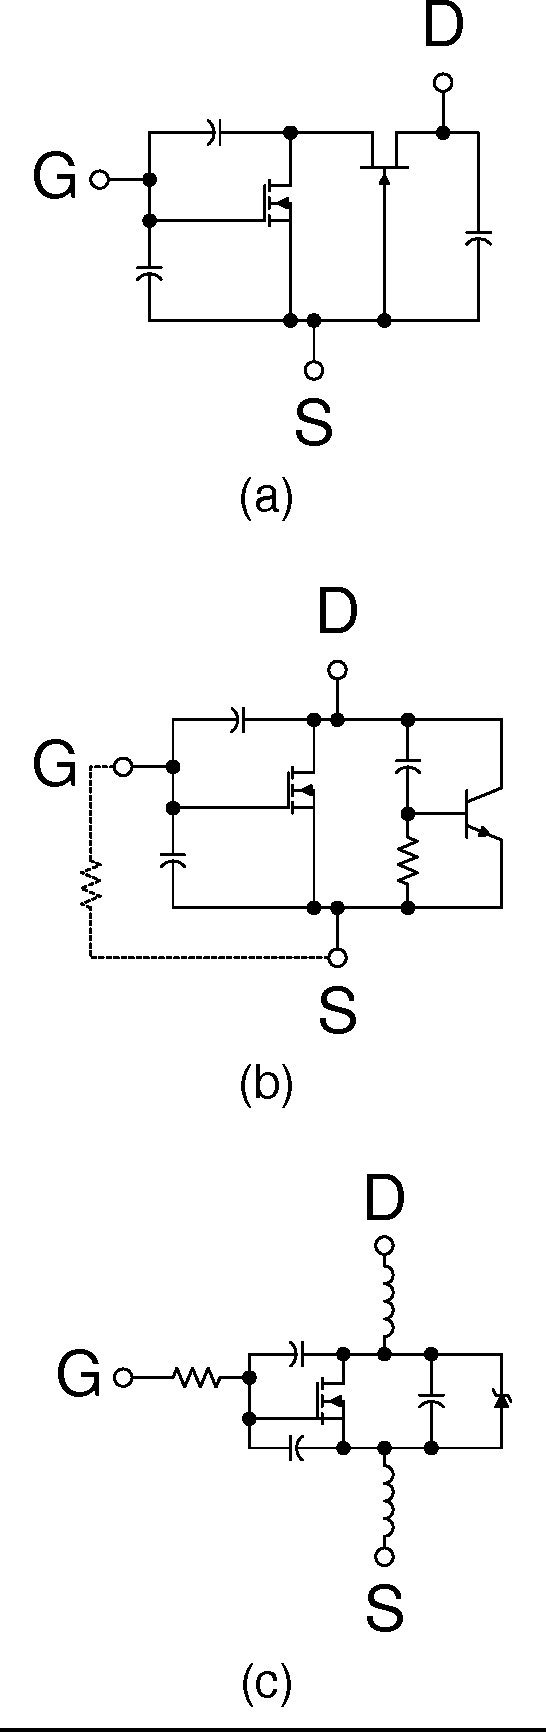 Design And Application Guide For High Speed Mosfet Gate Drive Circuit Mos Fet Power Switch Further N Channel Circuits By Semantic Scholar